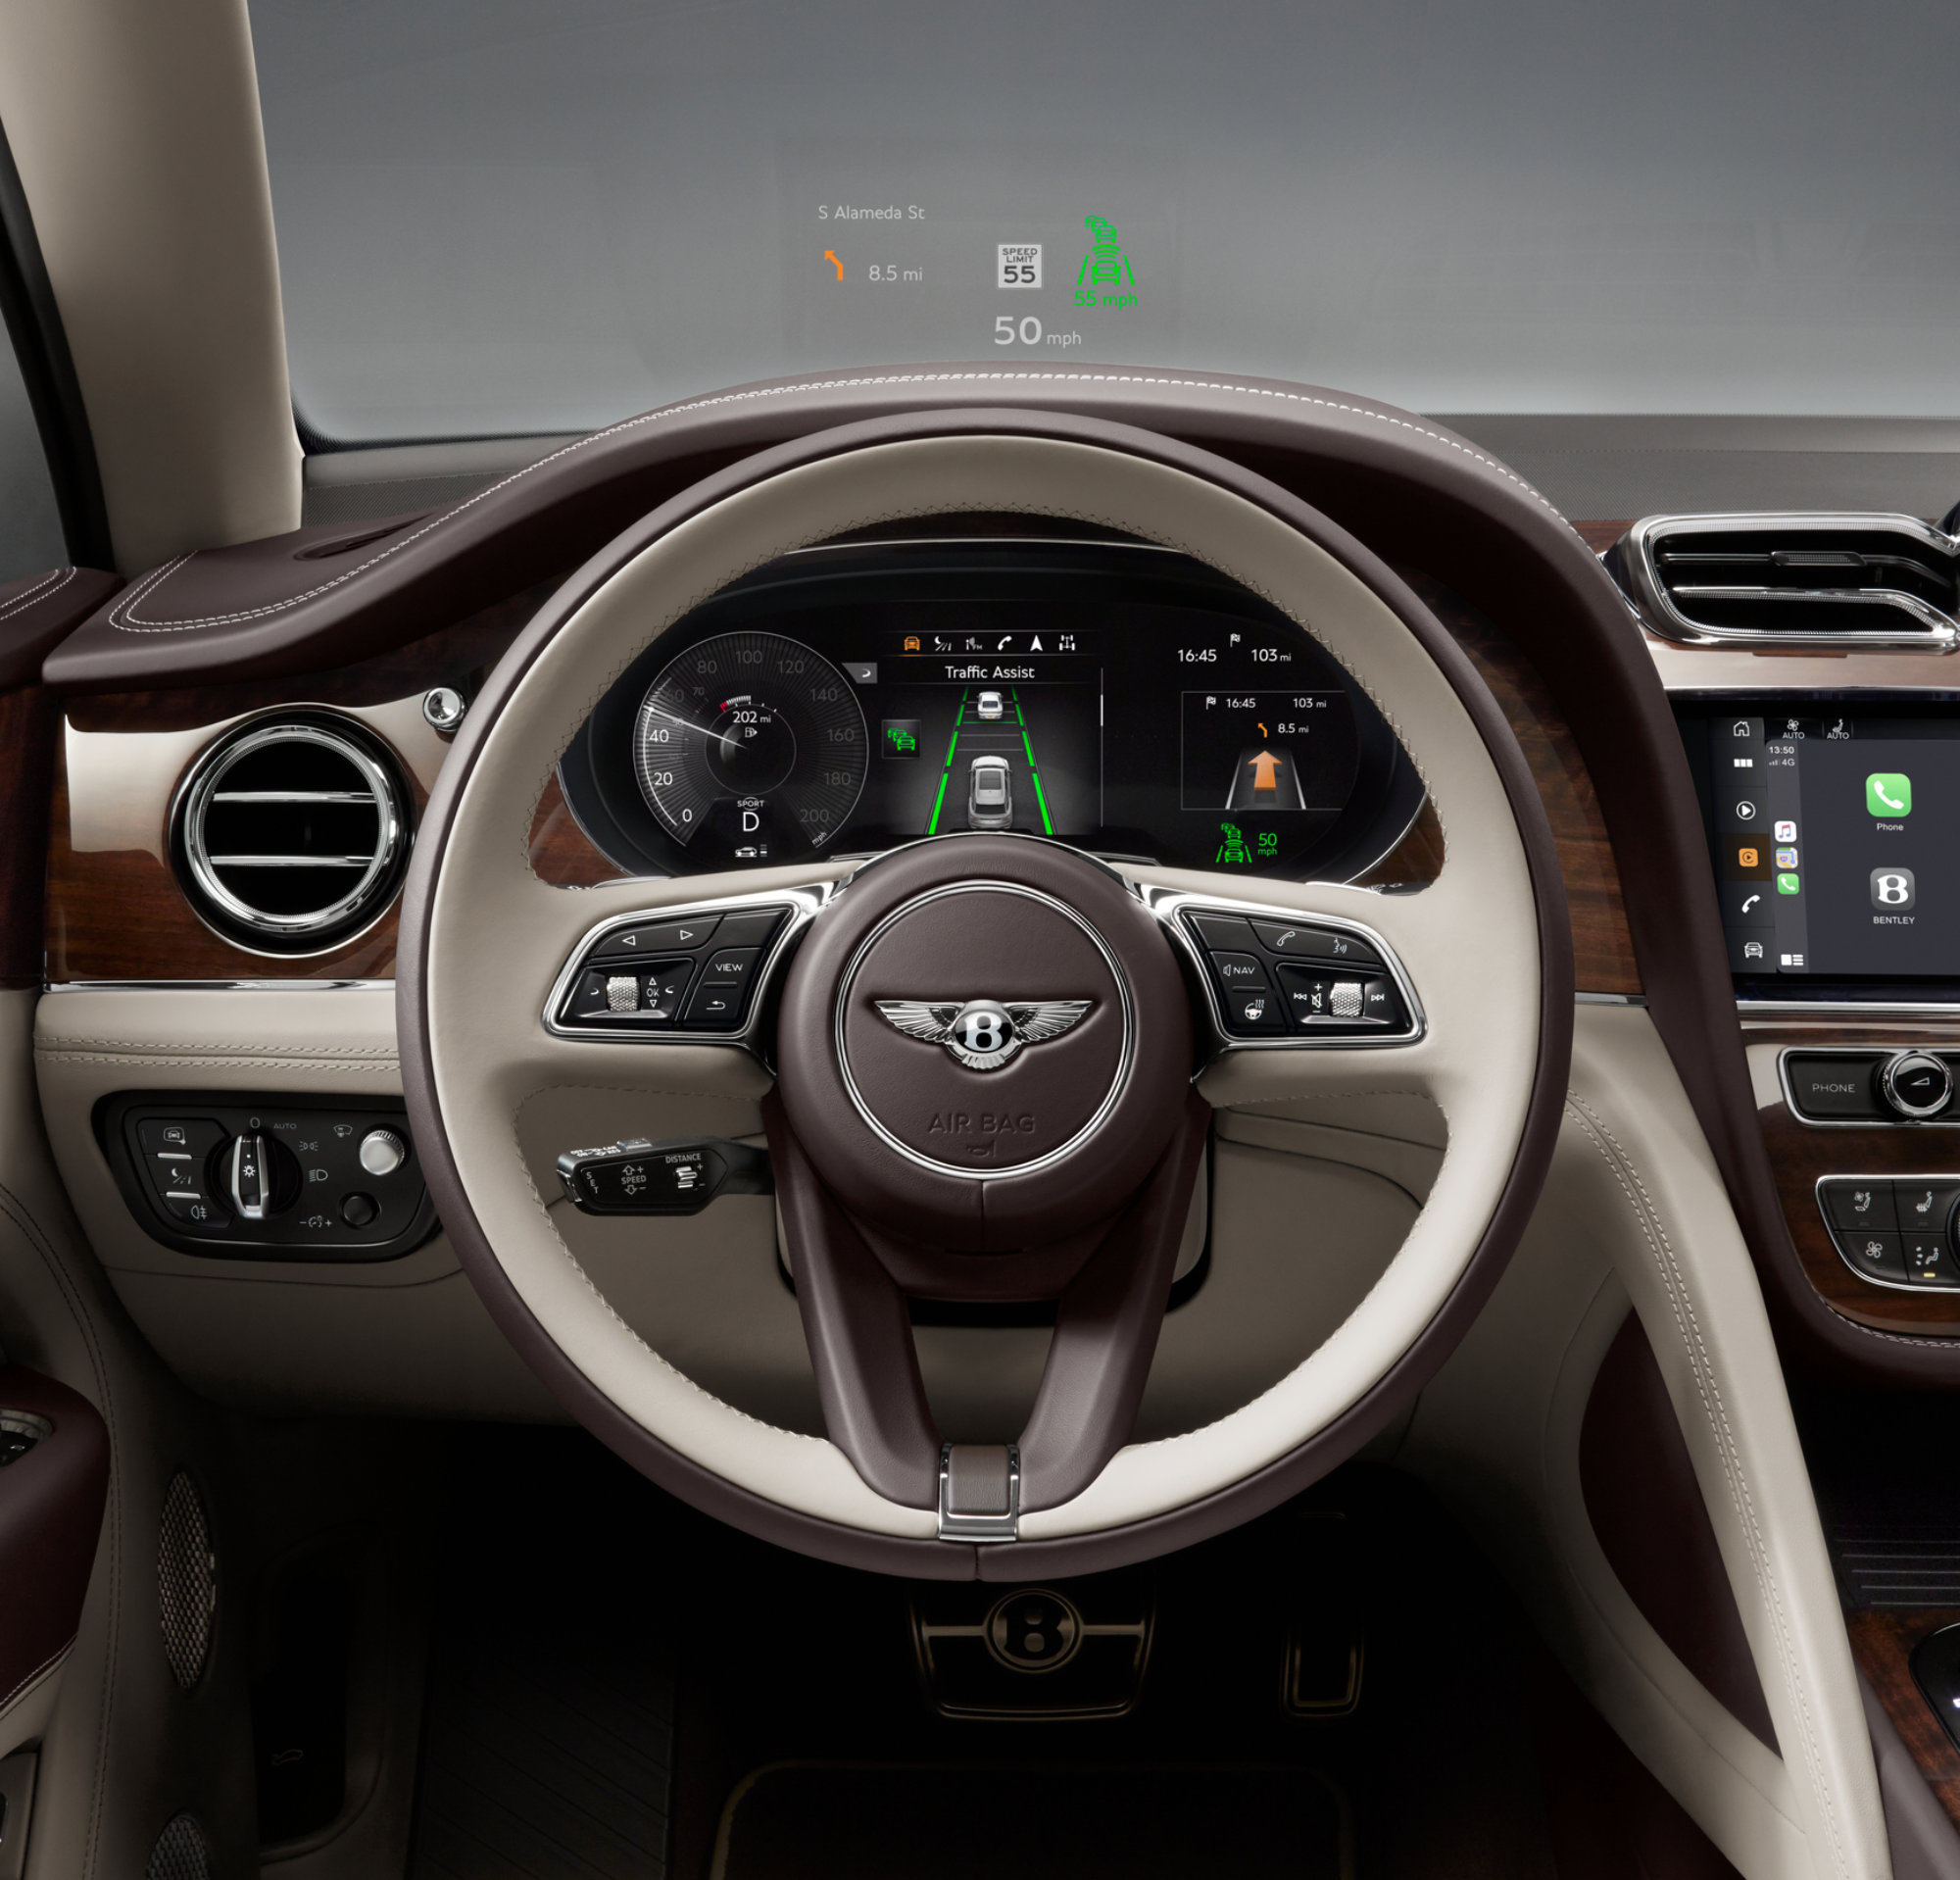 jpeg-Imagery_Bentayga V8_21MY_New Bentayga 21MY V8 Head up Display HUD.jpg